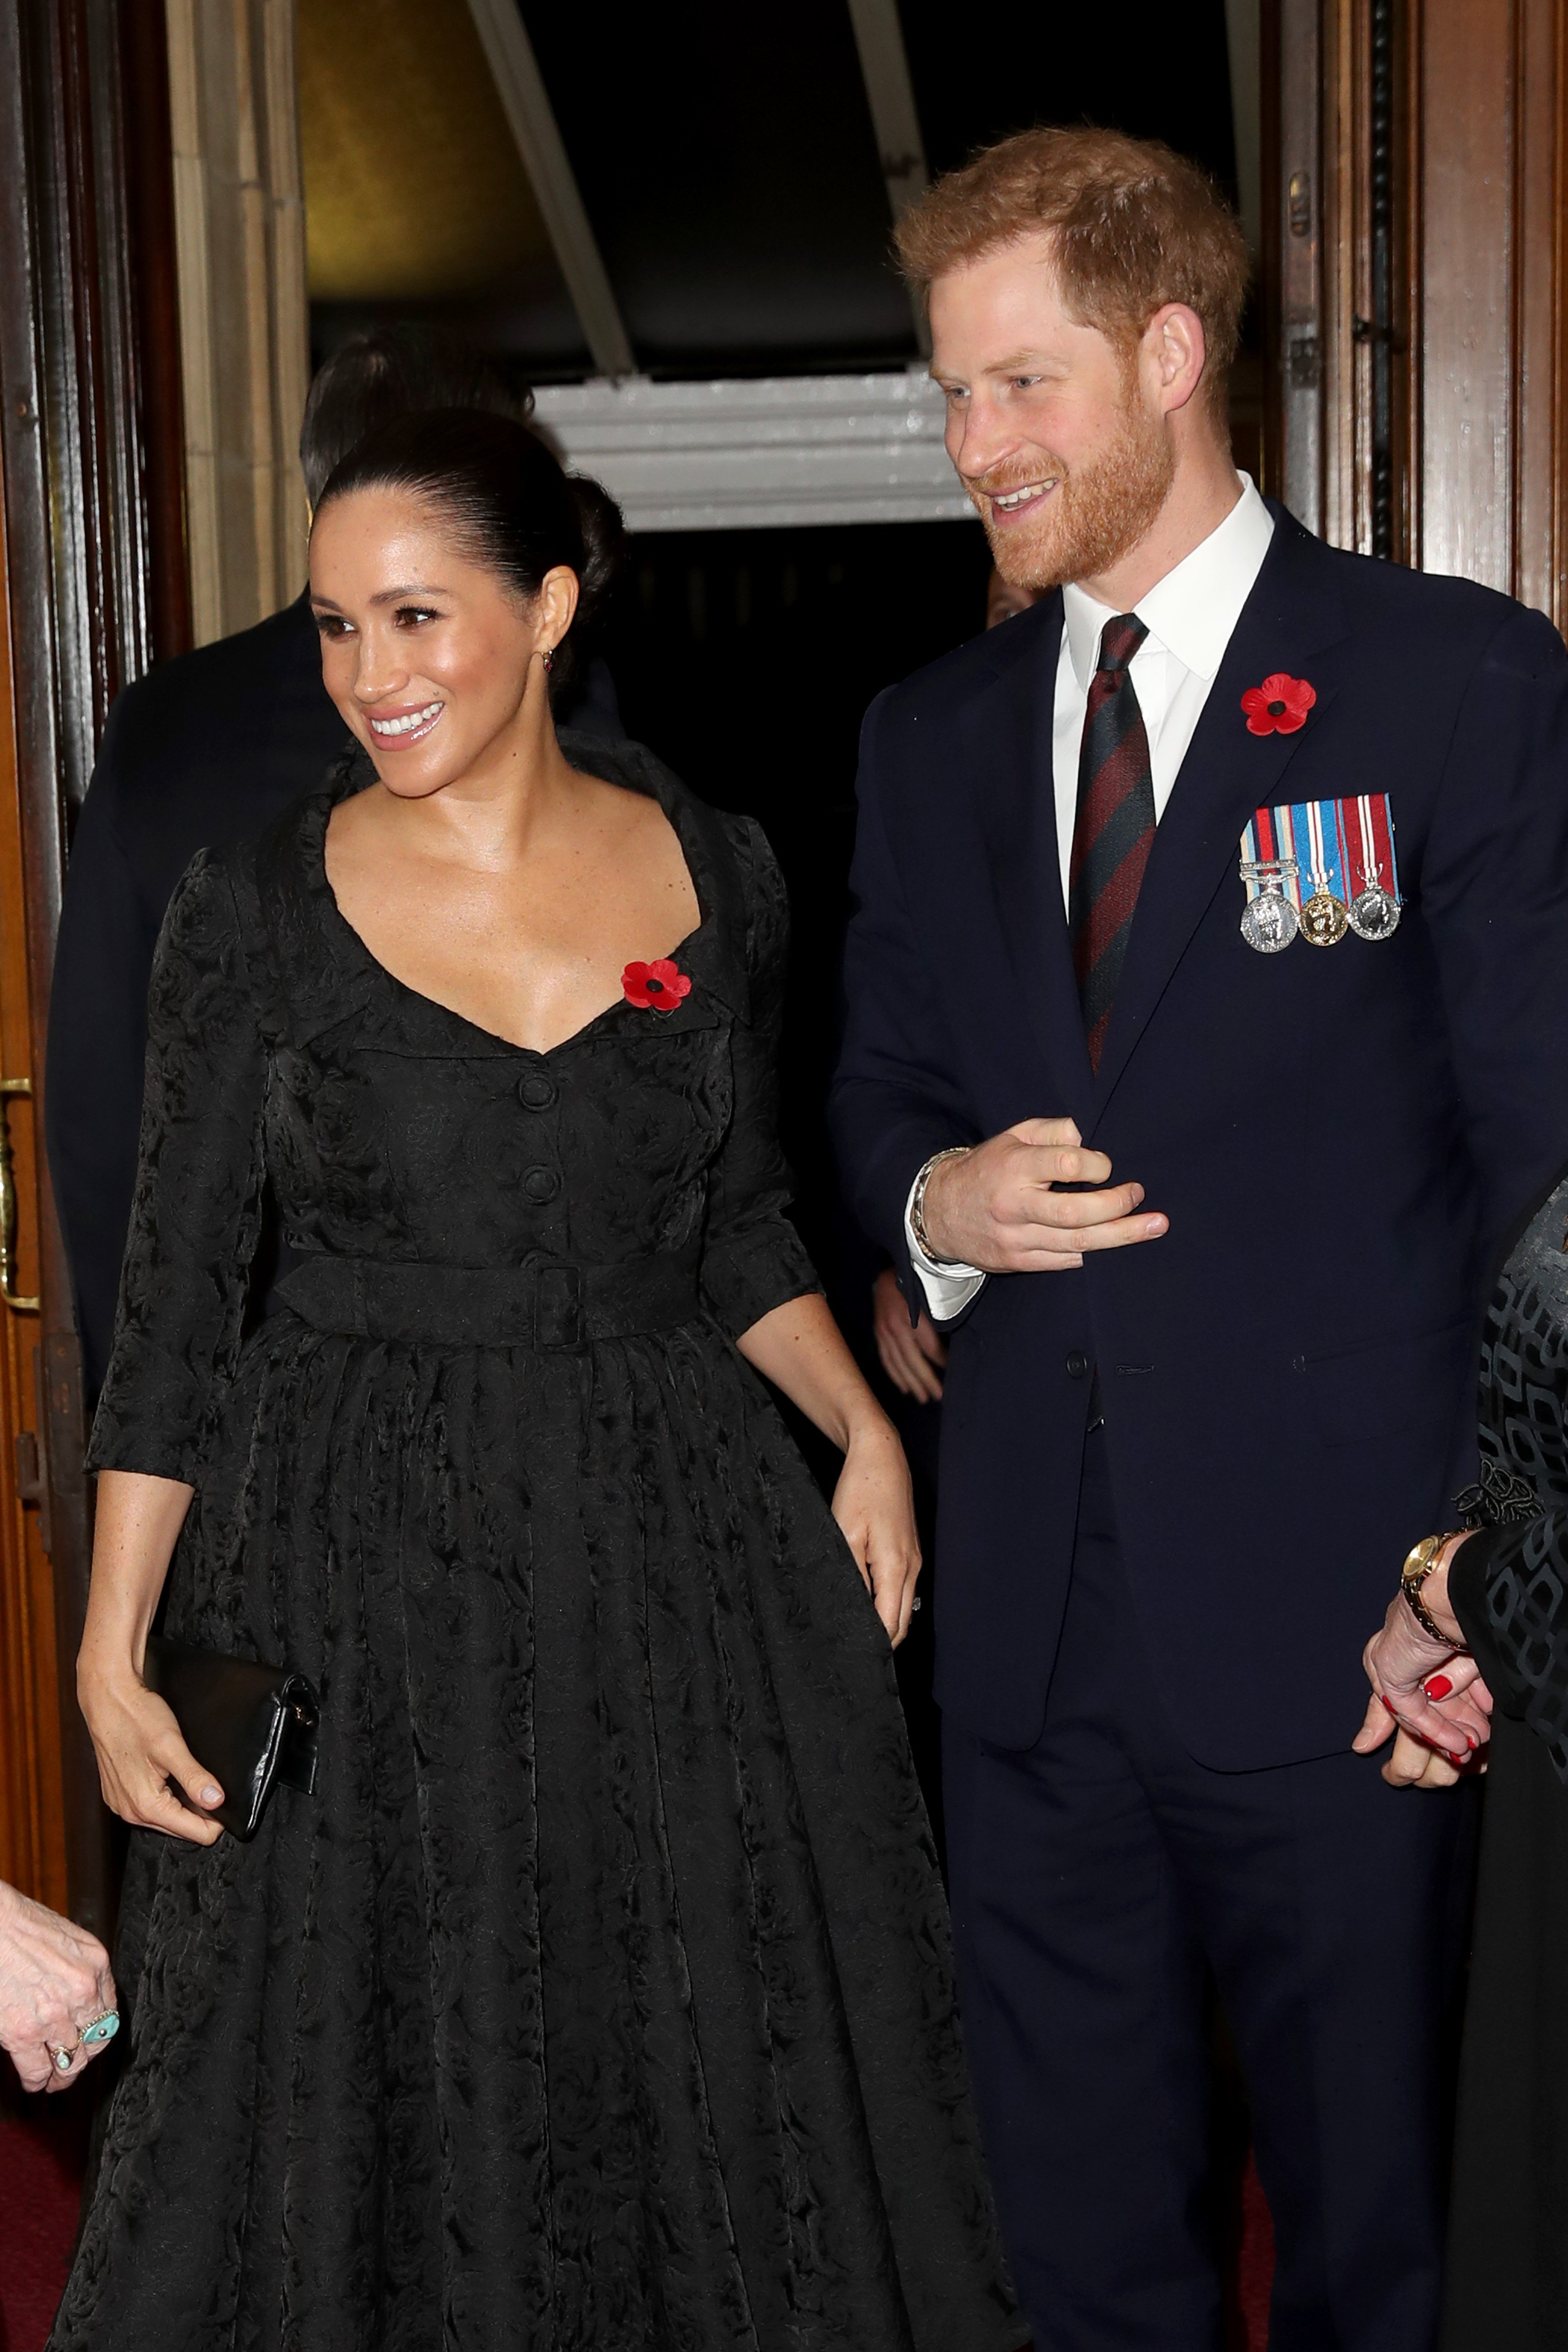 Meghan Markle et le prince Harry assistent au Festival of Remembrance à Londres, Angleterre, le 9 novembre 2019 | Photo: Getty Images